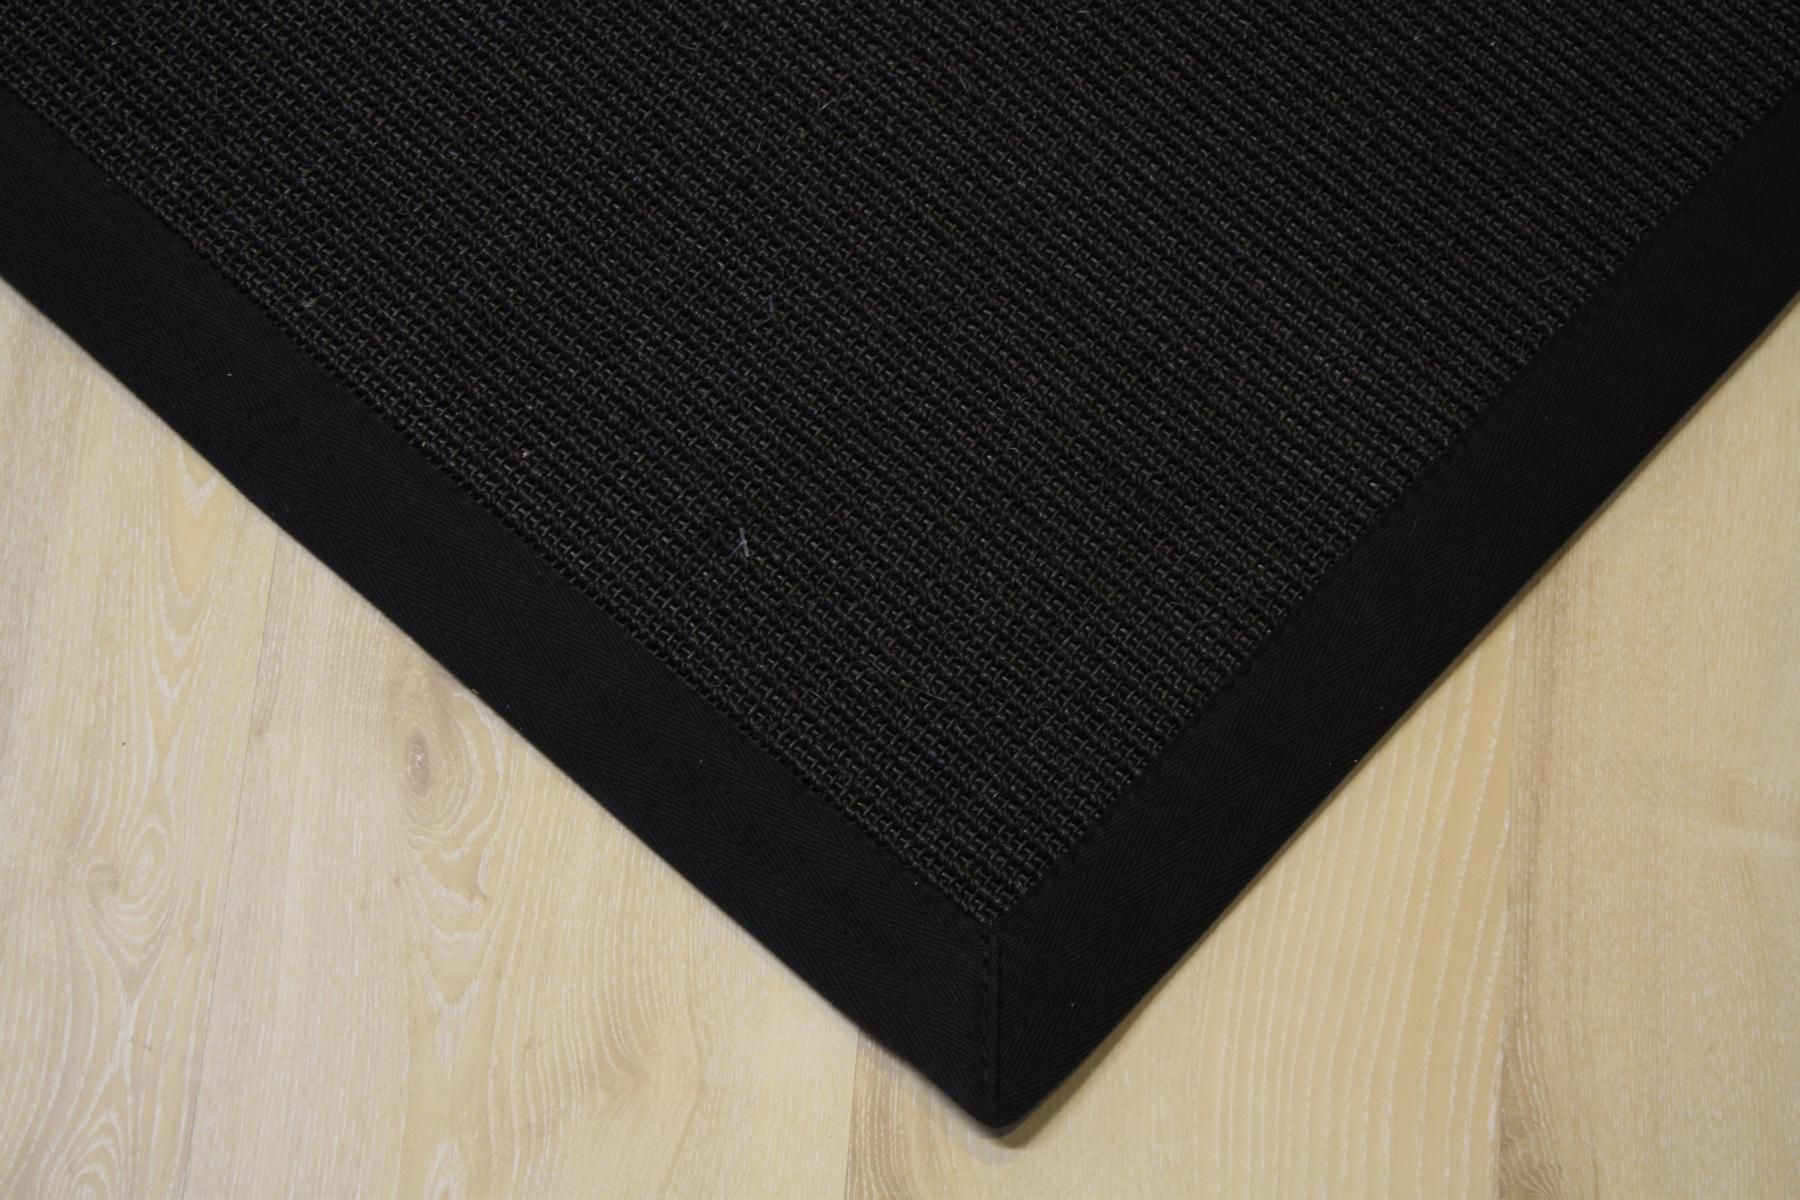 sisal teppich manaus mit bord re schwarz 250x300 cm 100 sisal ebay. Black Bedroom Furniture Sets. Home Design Ideas